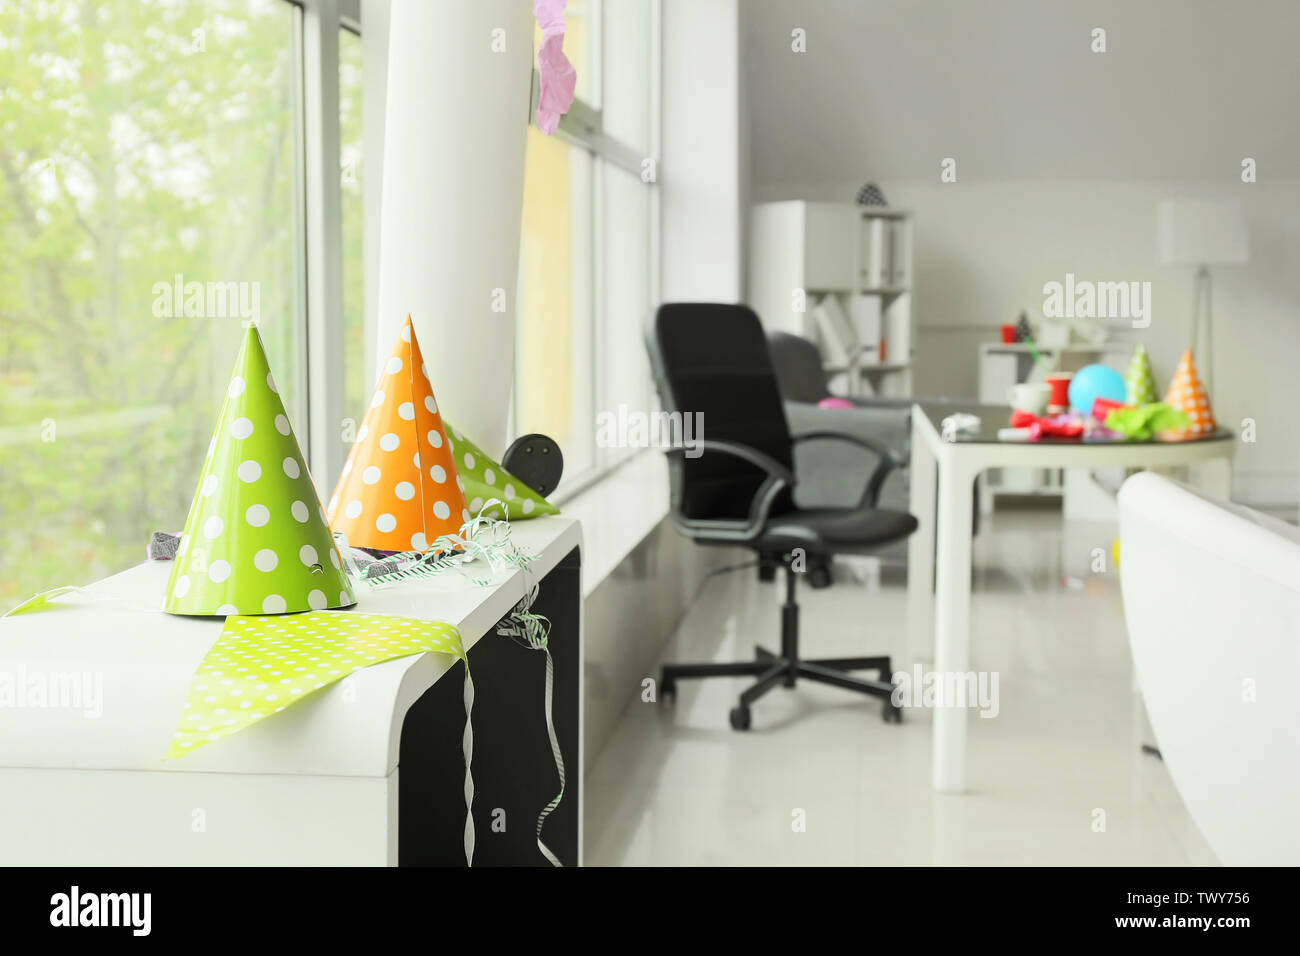 Interior of office after party - Stock Image